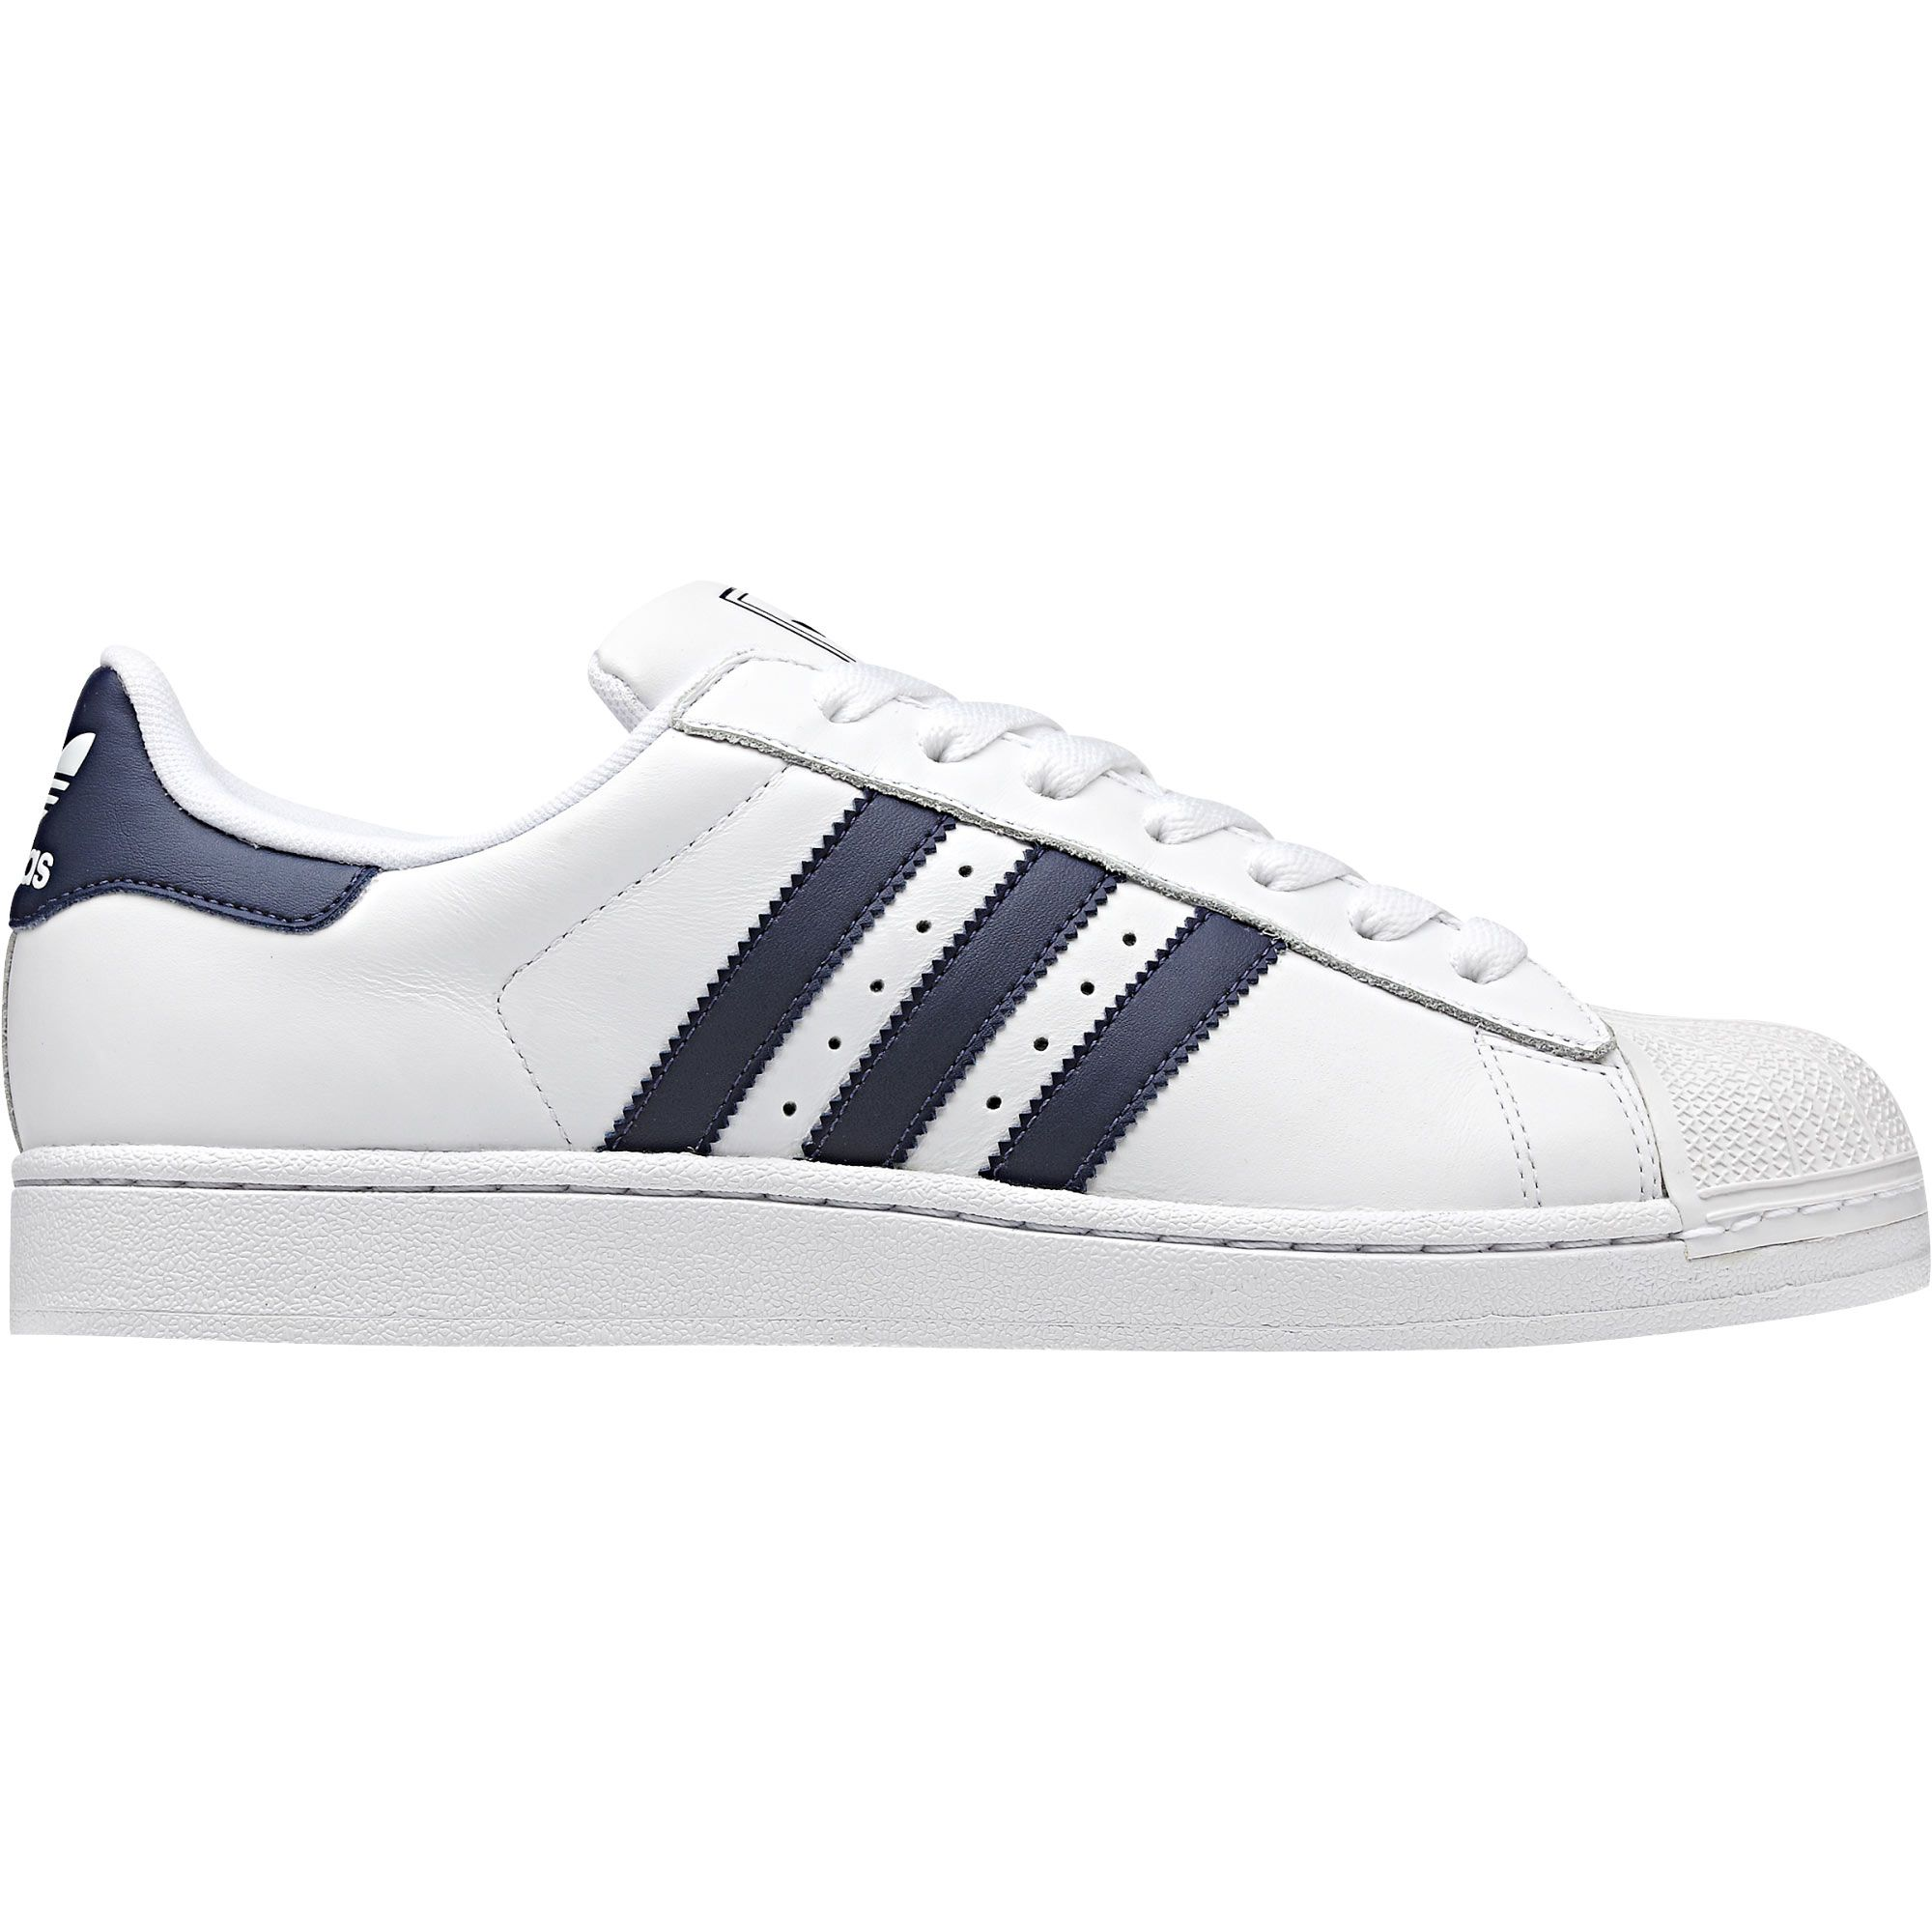 low priced d4d63 ff257 adidas Superstar 2 White Navy Blue  adidas UK. Can t believe how difficult  it is to get these in England now  (